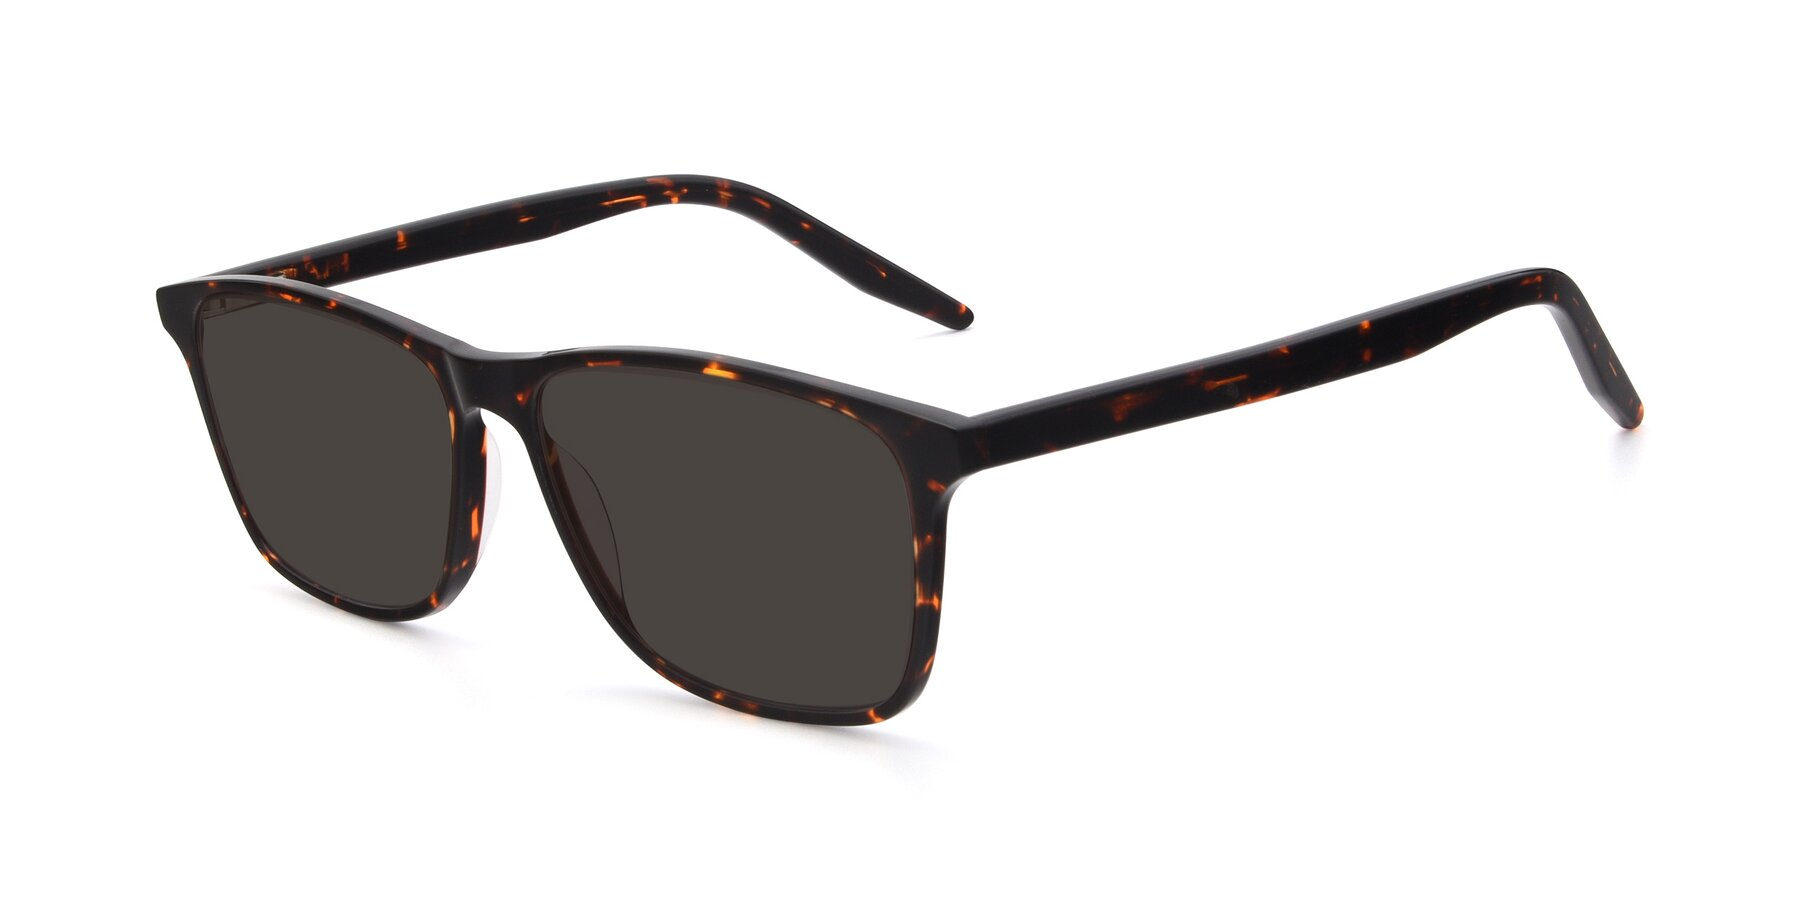 Angle of 17500 in Tortoise with Gray Tinted Lenses